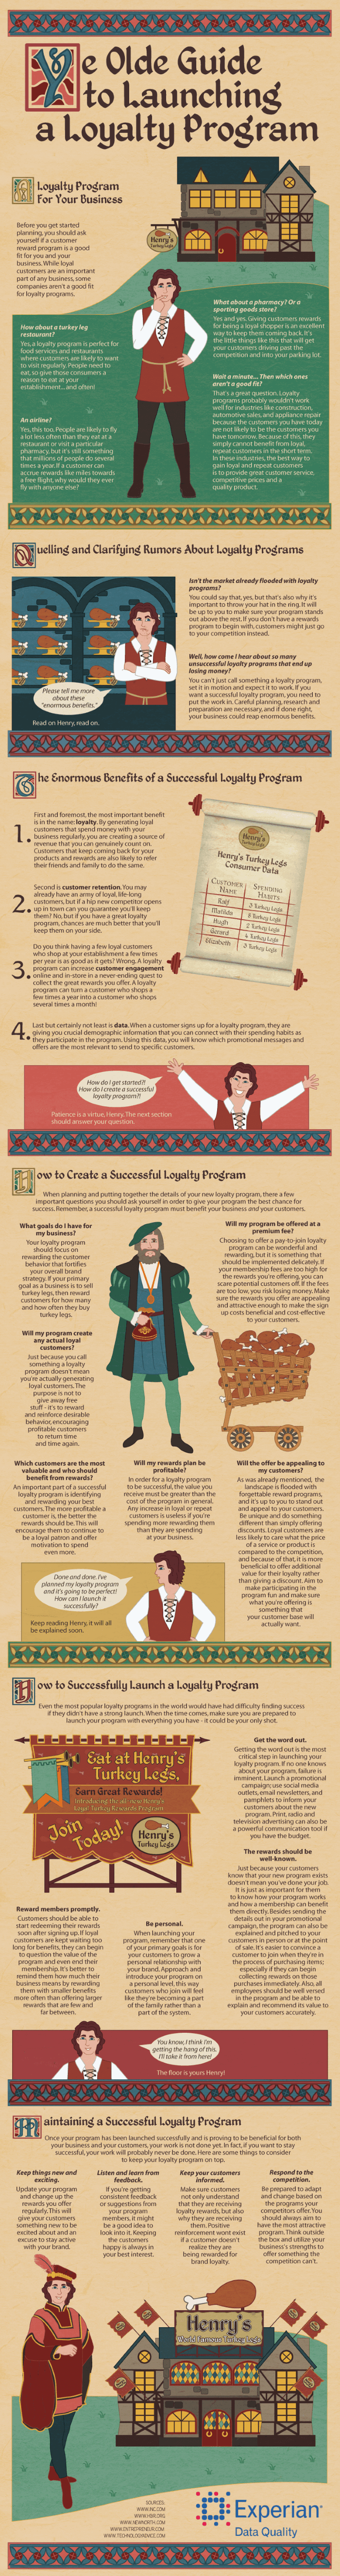 Ye Olde Guide To Launching a Loyalty Program